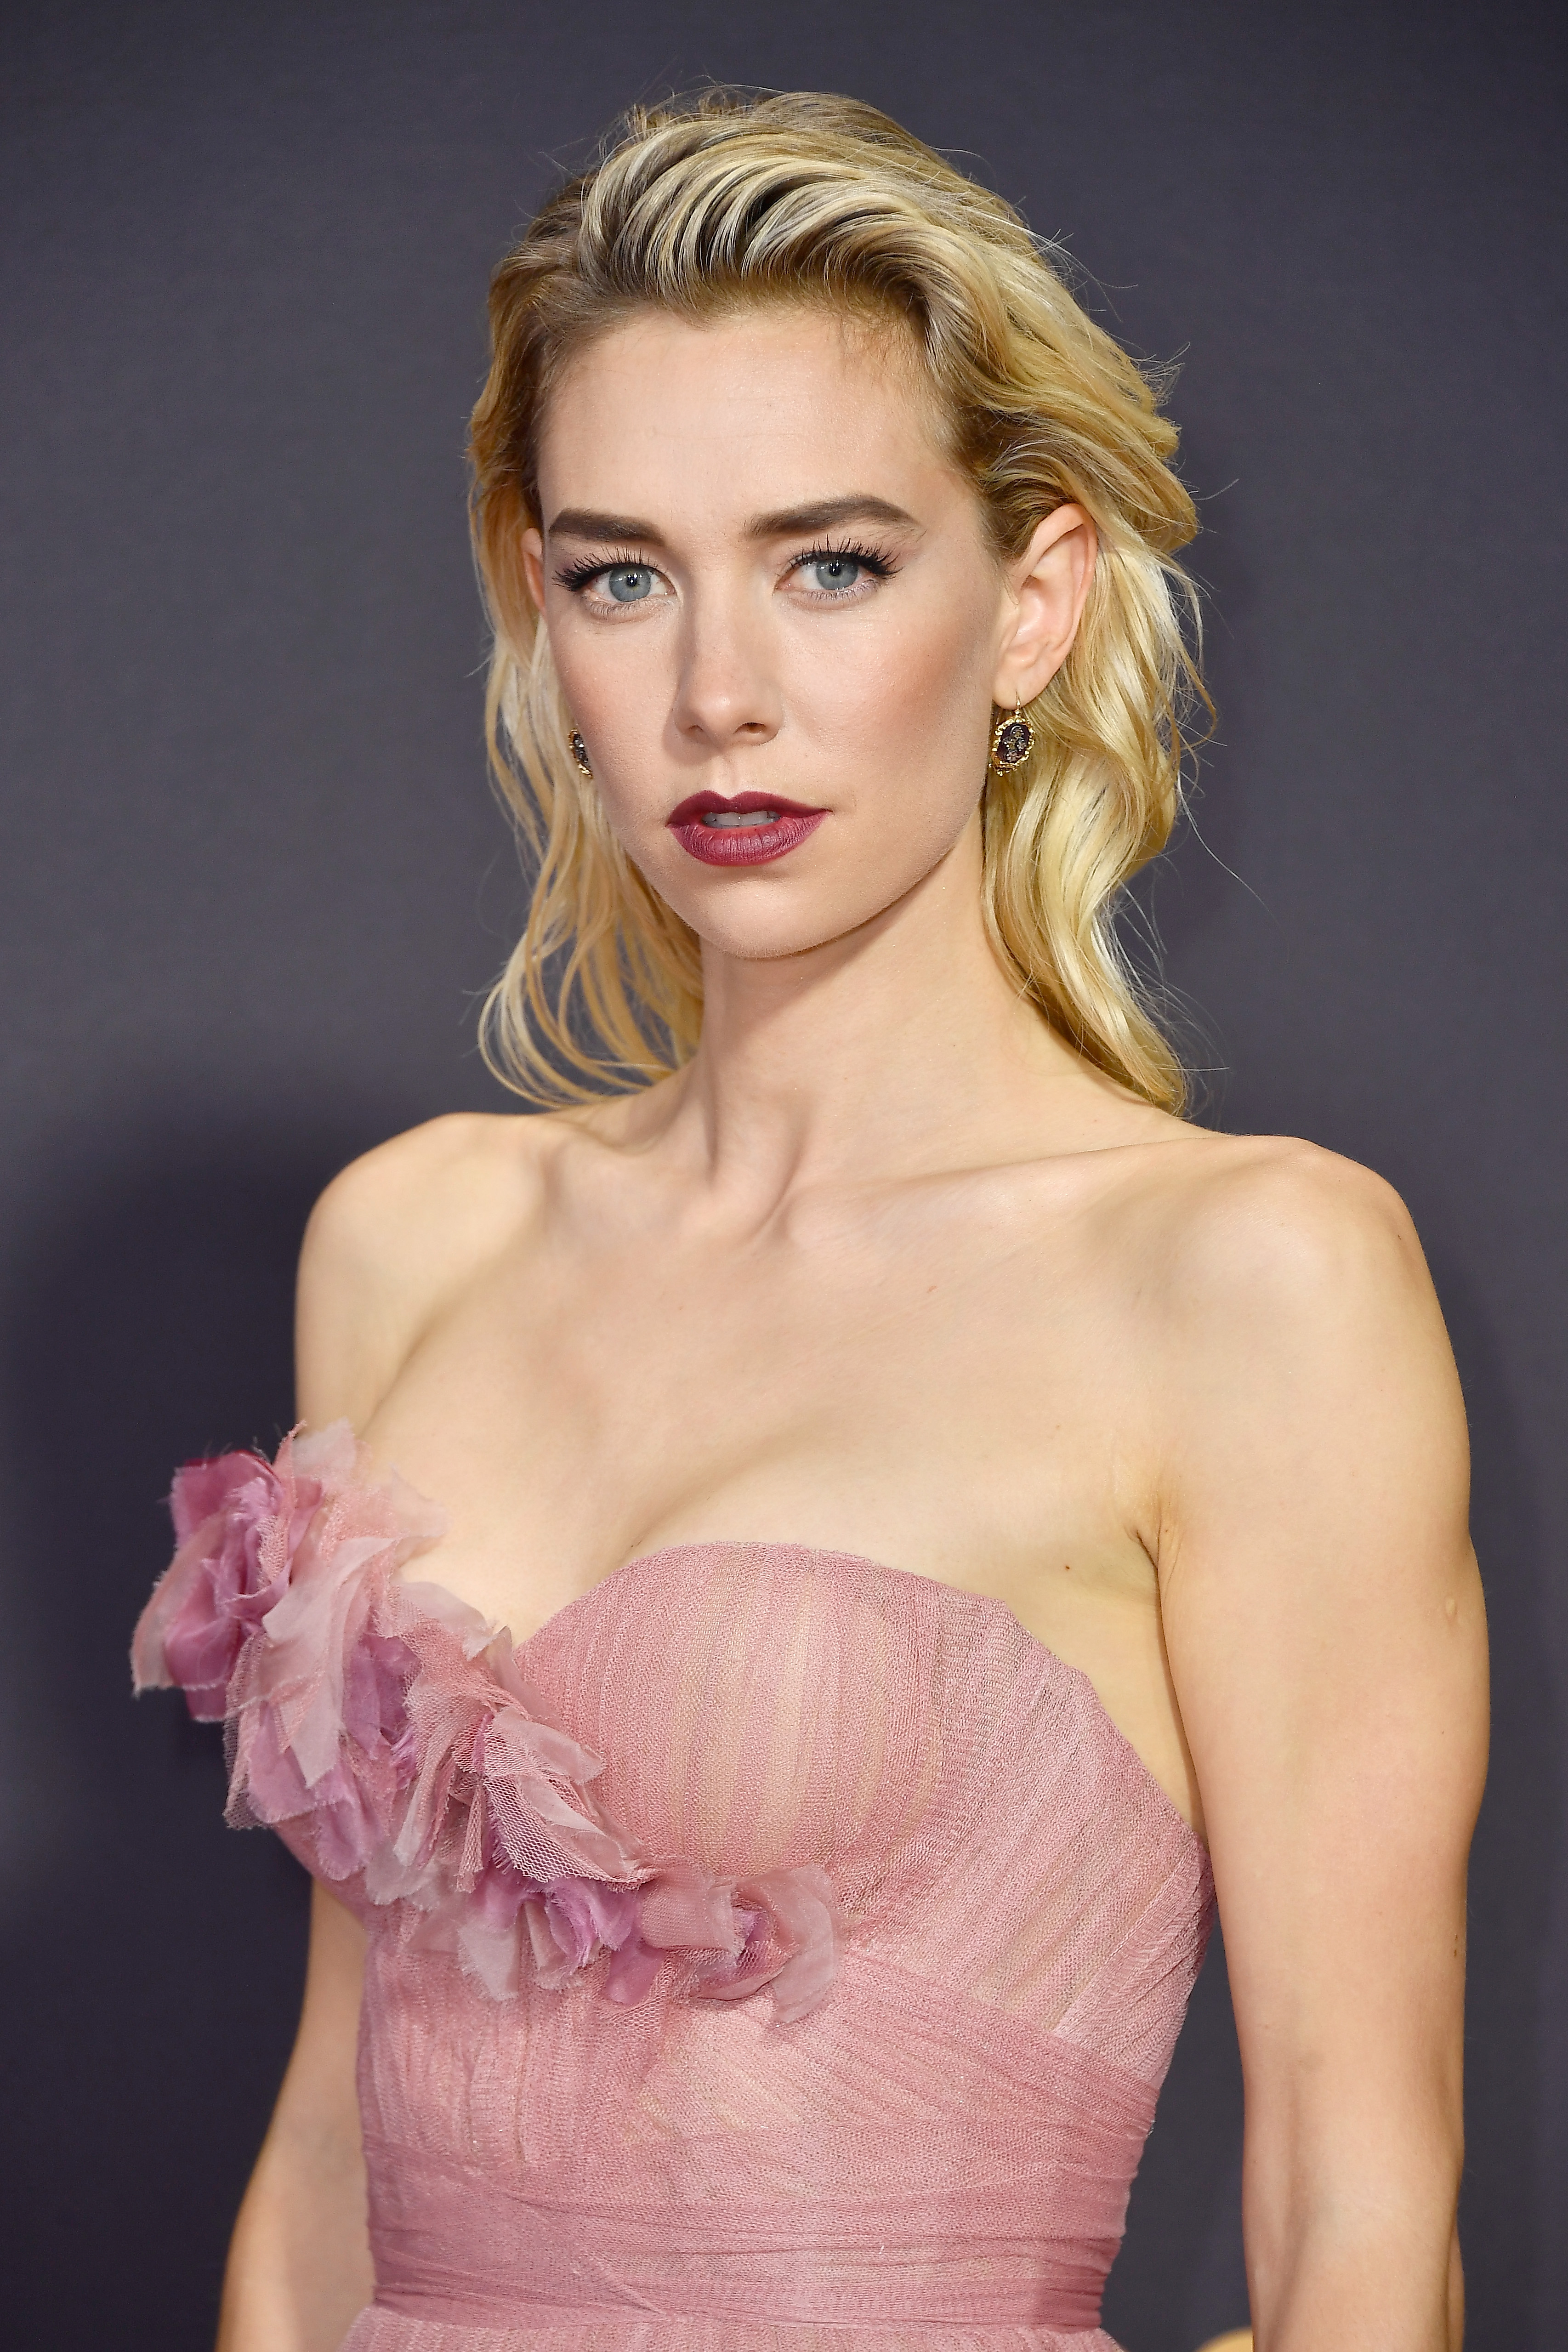 Actor Vanessa Kirby attends the 69th Annual Primetime Emmy Awards at Microsoft Theater on September 17, 2017 in Los Angeles, California.